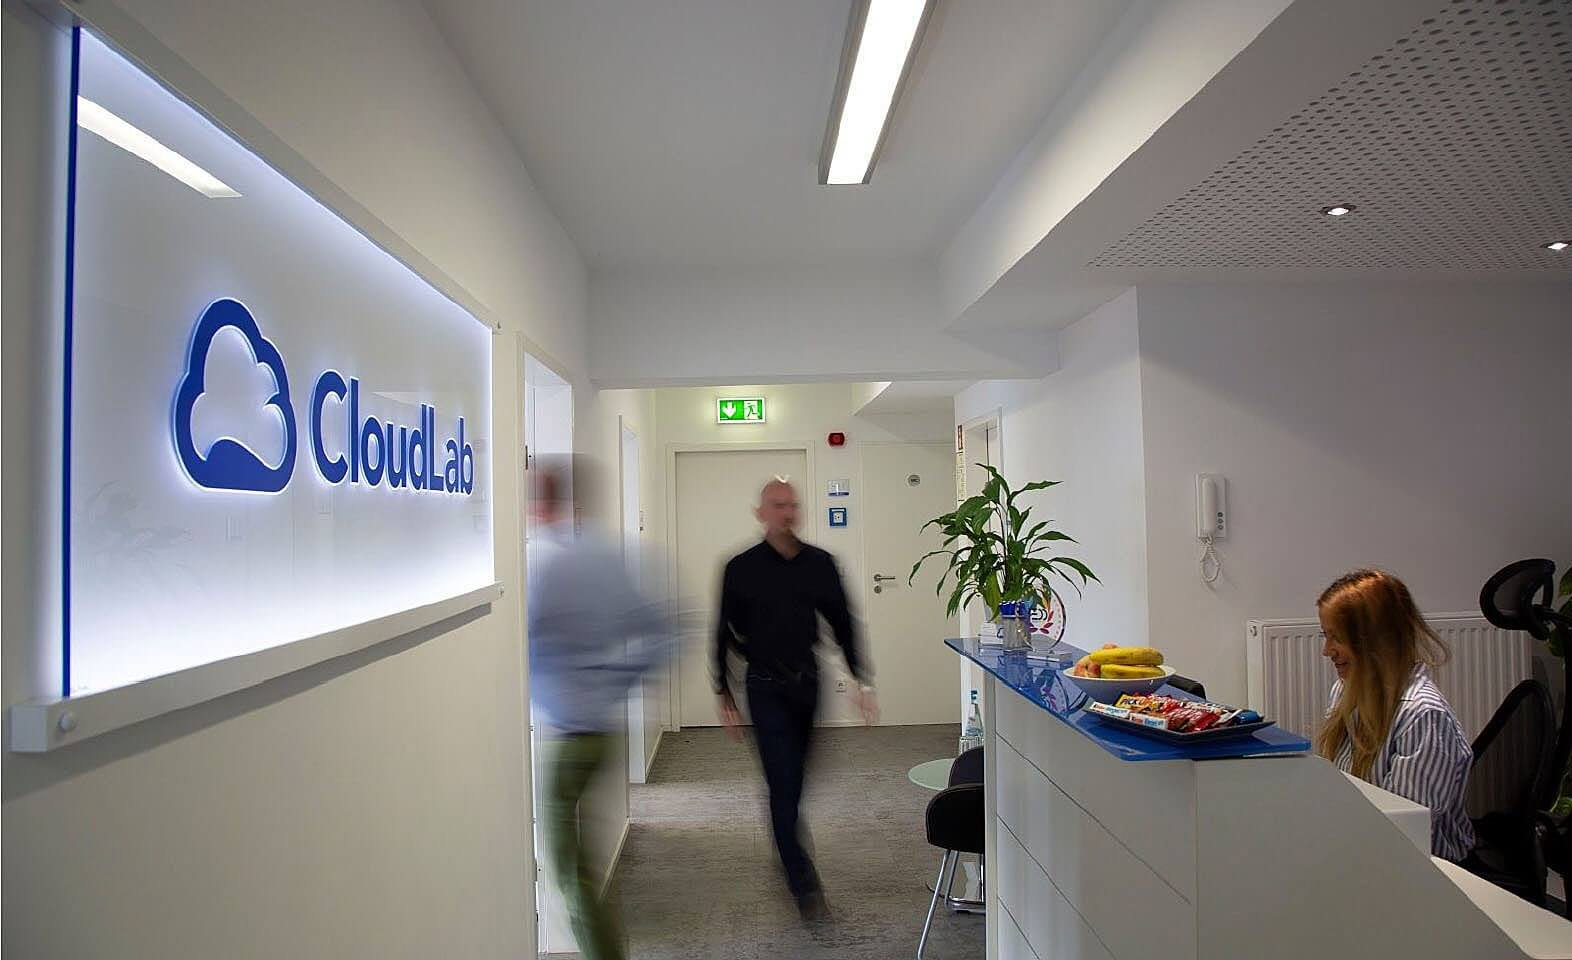 CloudLab: Distributor network is being expanded